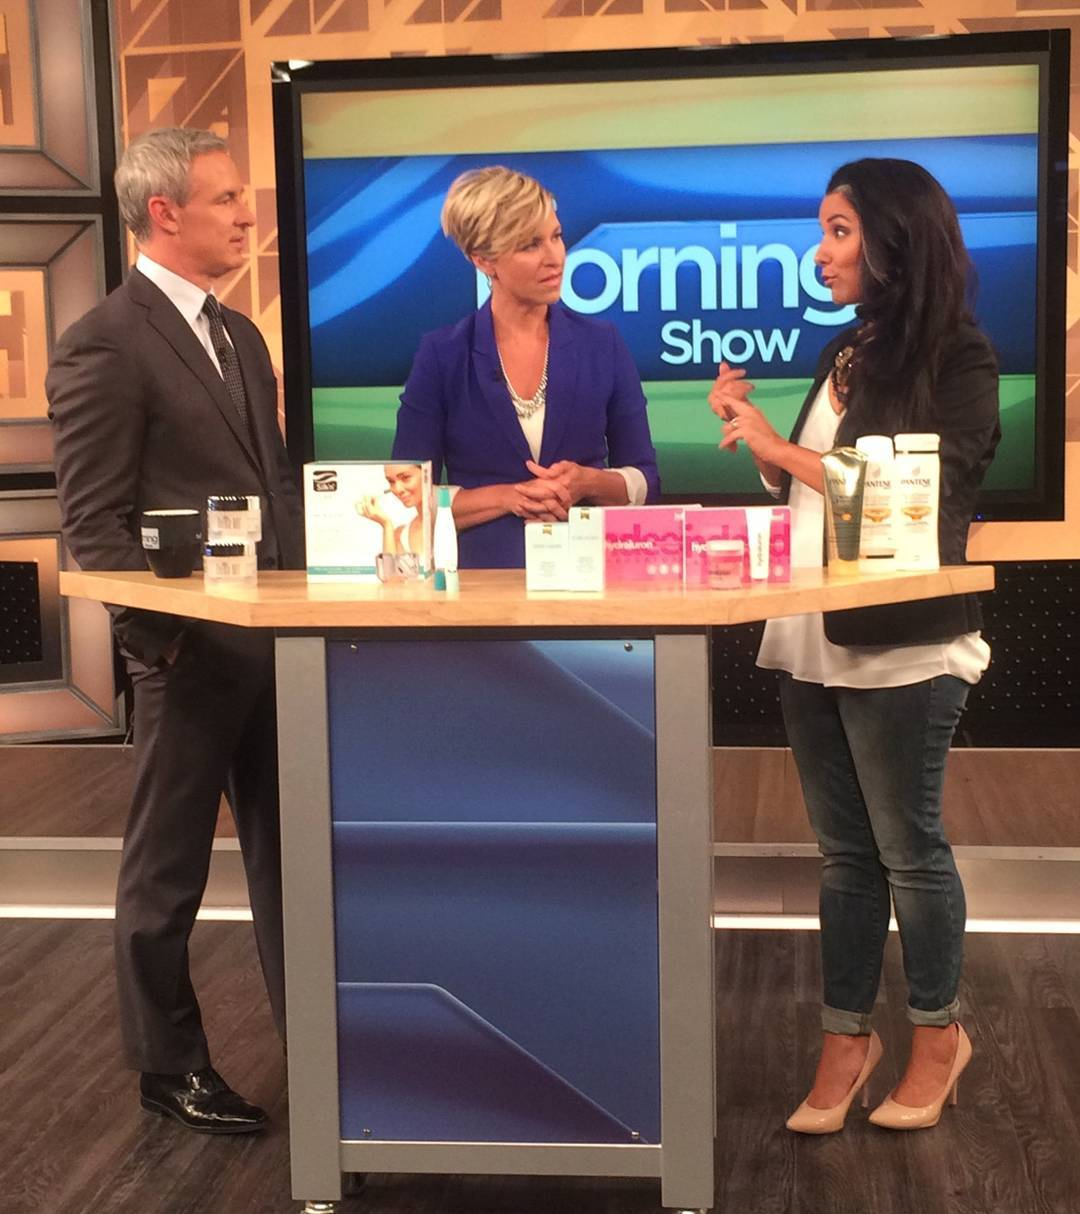 Such an attentive audience 😍 @jmacspeaks & @carolynmackenzie (and YOU) get to hear me dish abt my top fragrance picks this Wednesday on @morningshowto!